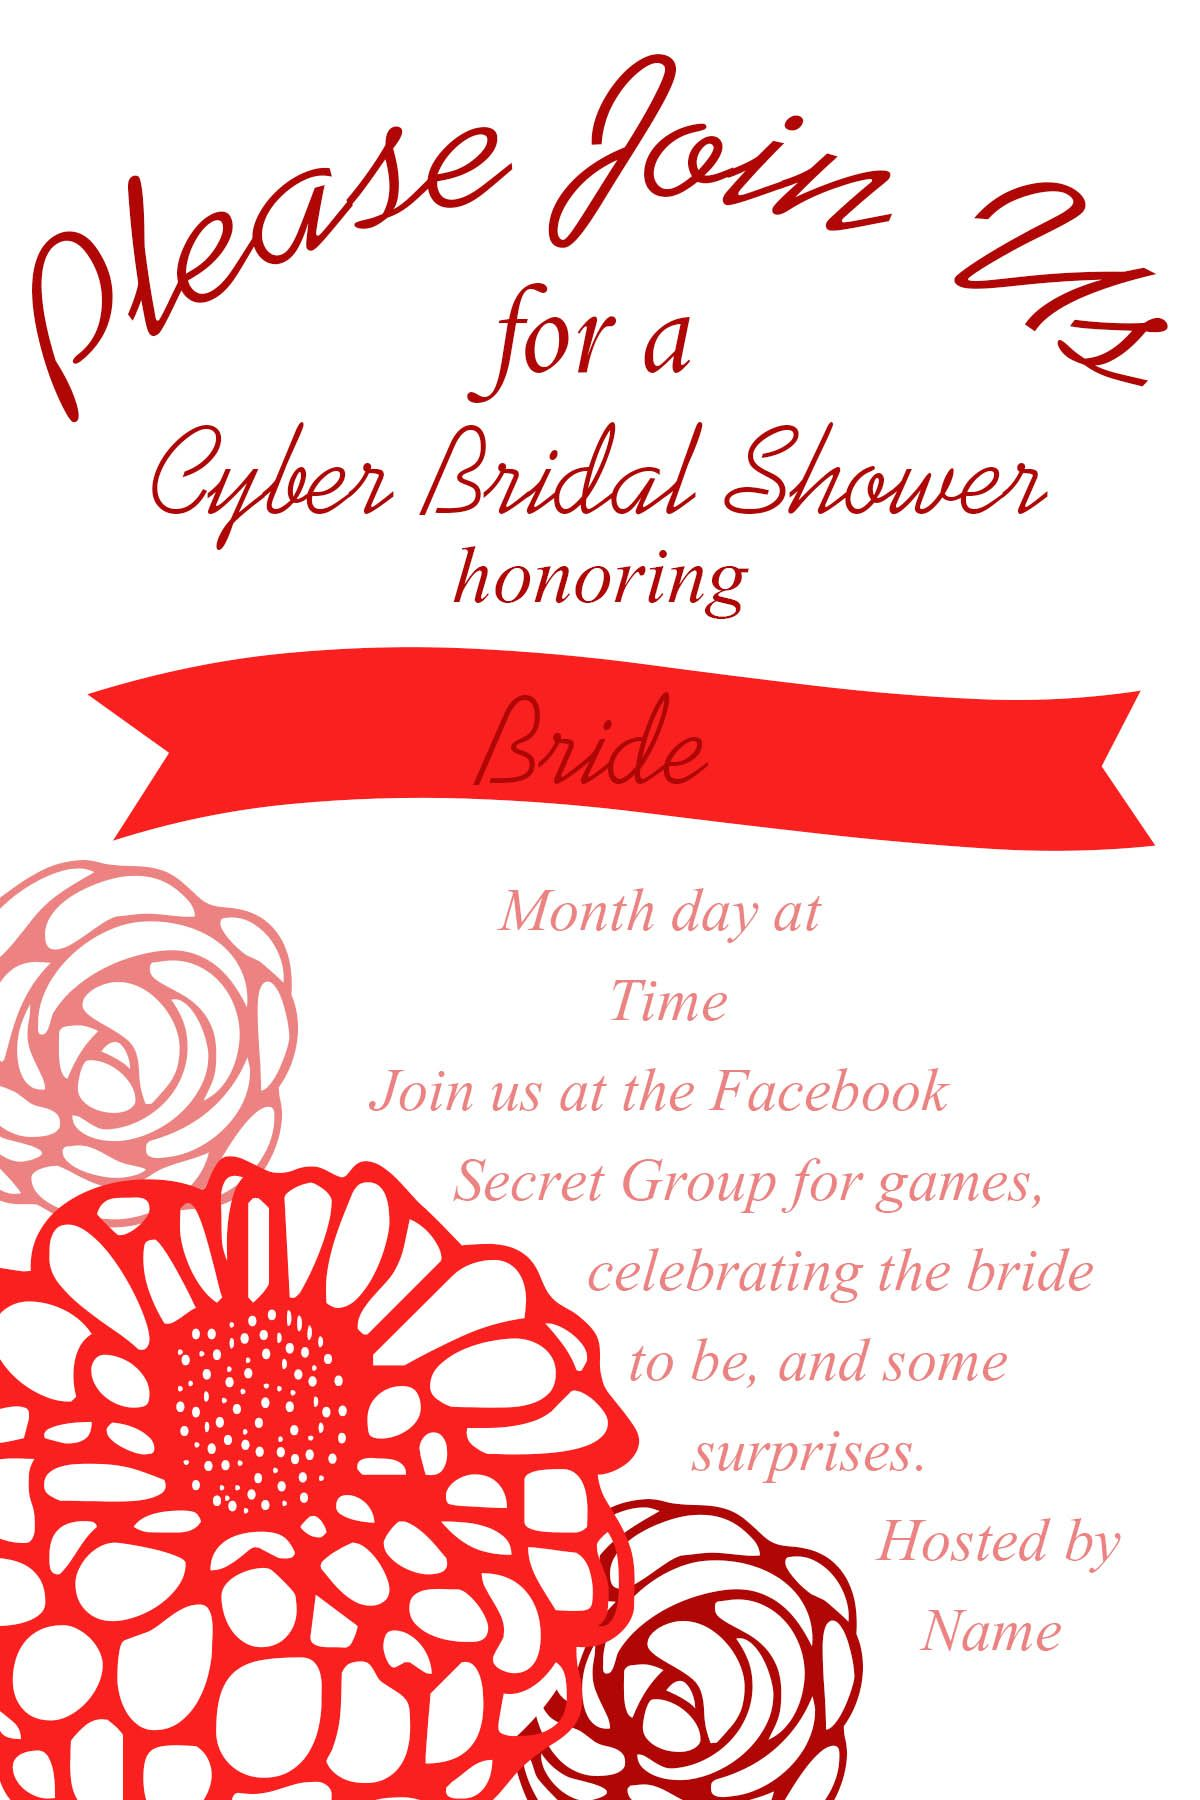 How To Host A Cyber Bridal Shower